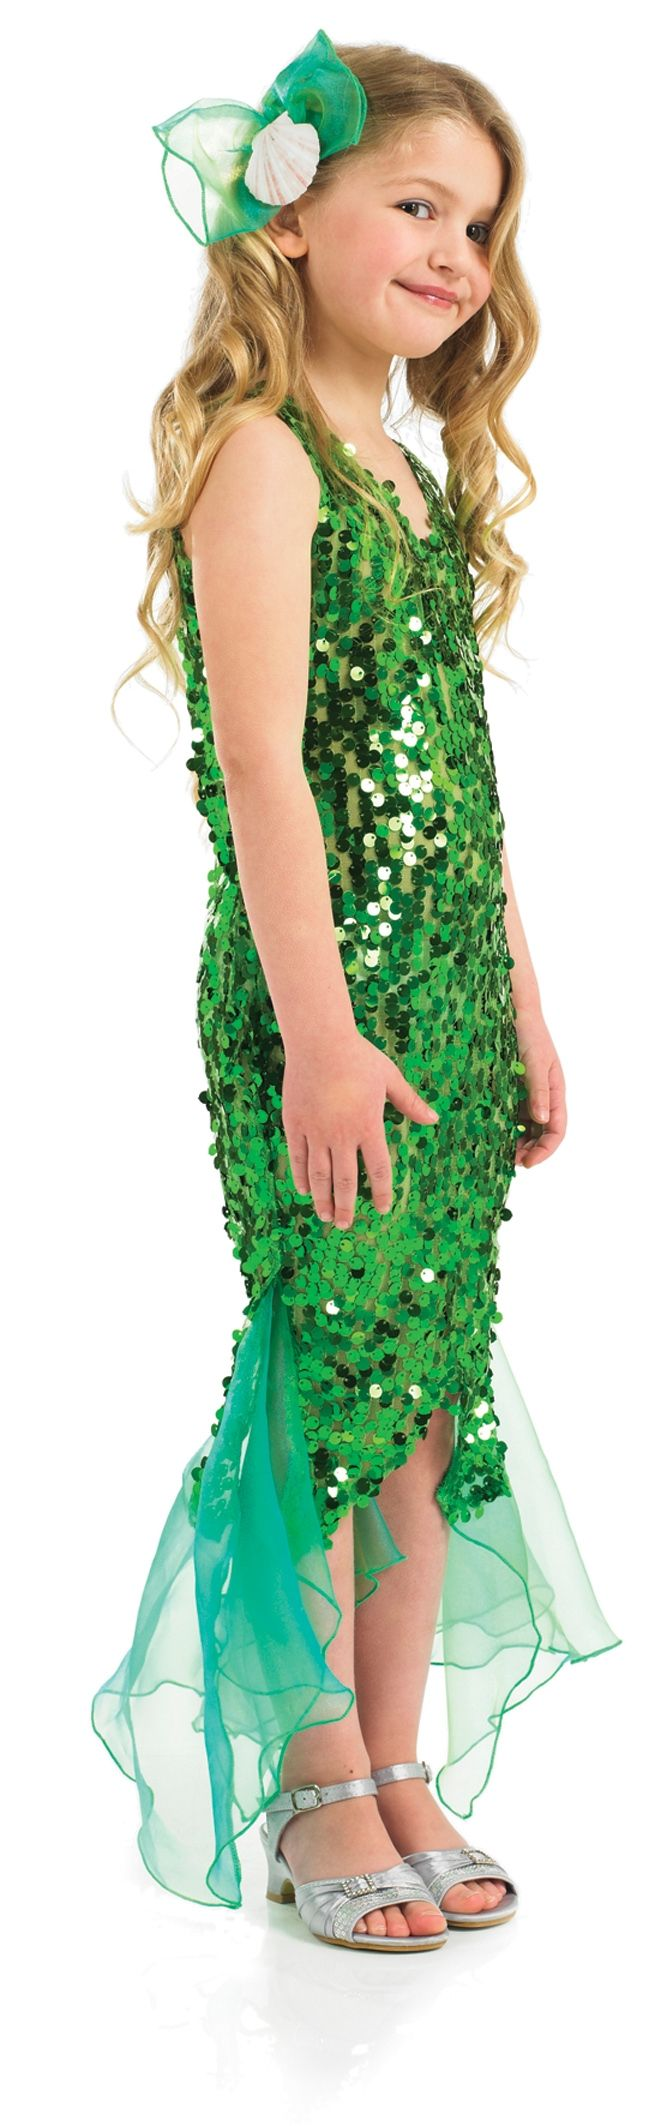 Little Mermaid Girls Fancy Dress Green Sequin Ariel Fairytale Kids Costume 4-12 | eBay